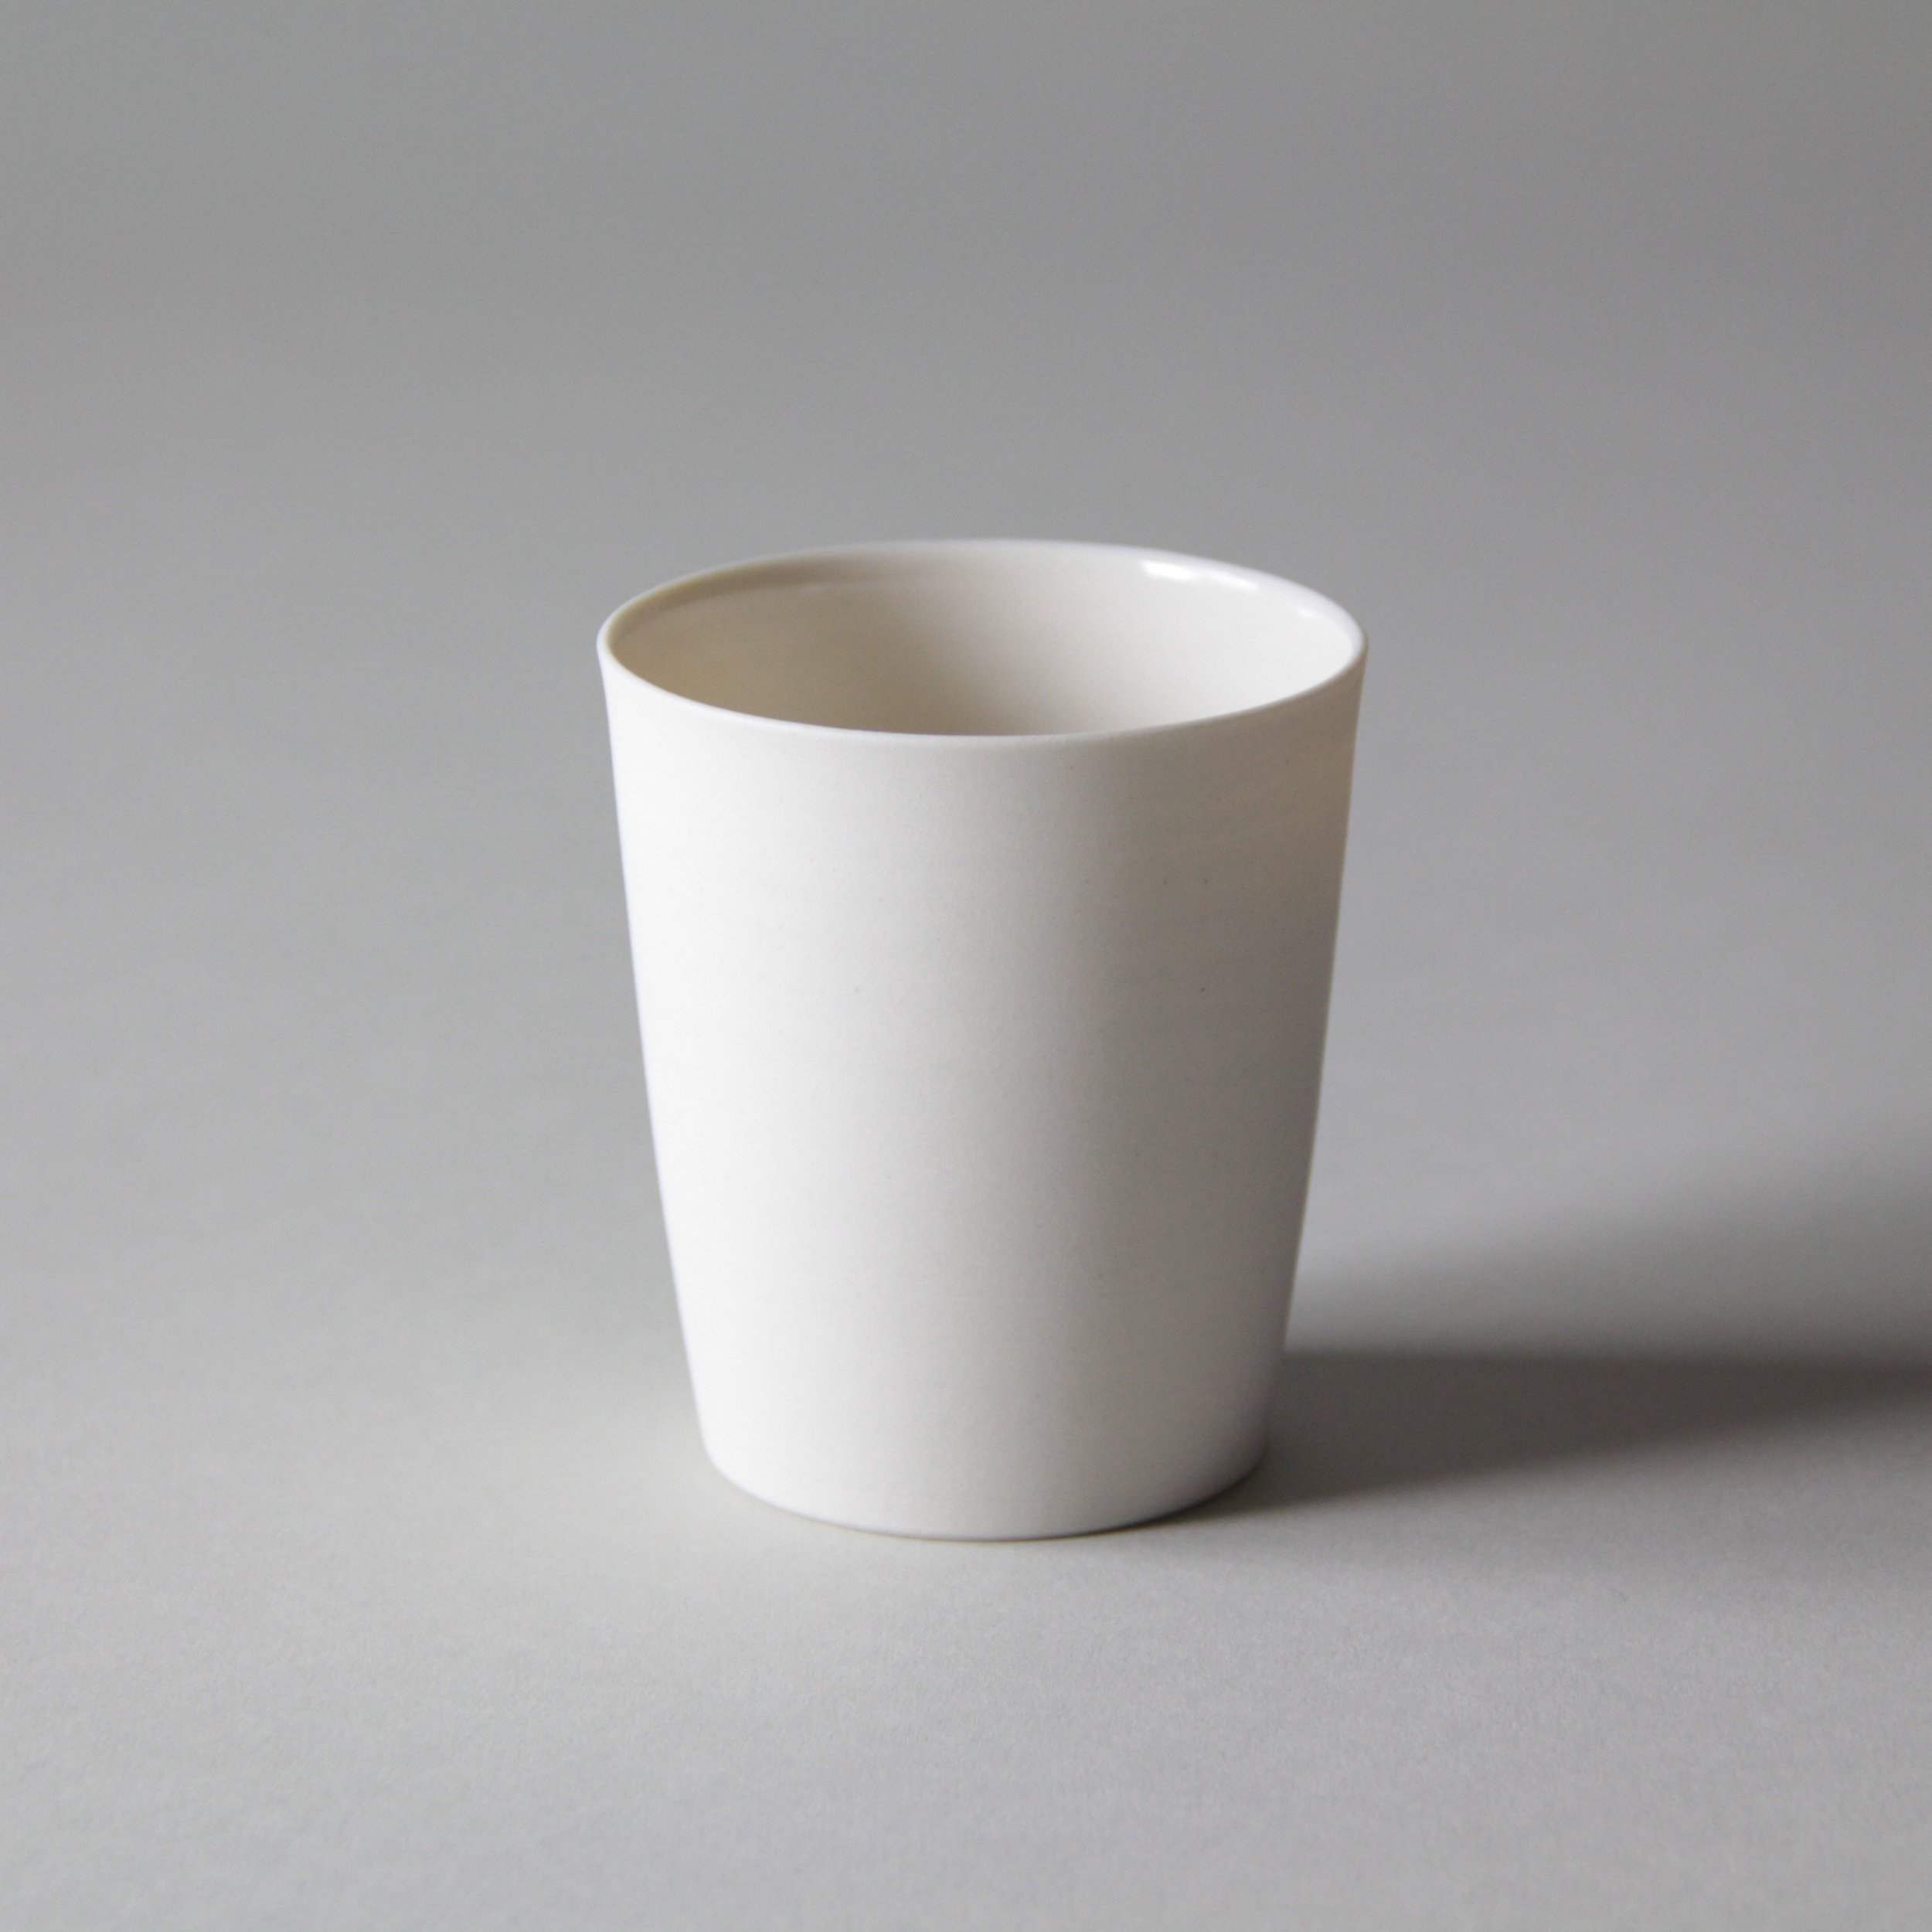 Ceramic tea cup made by Lilith Rockett, Portland, Oregon